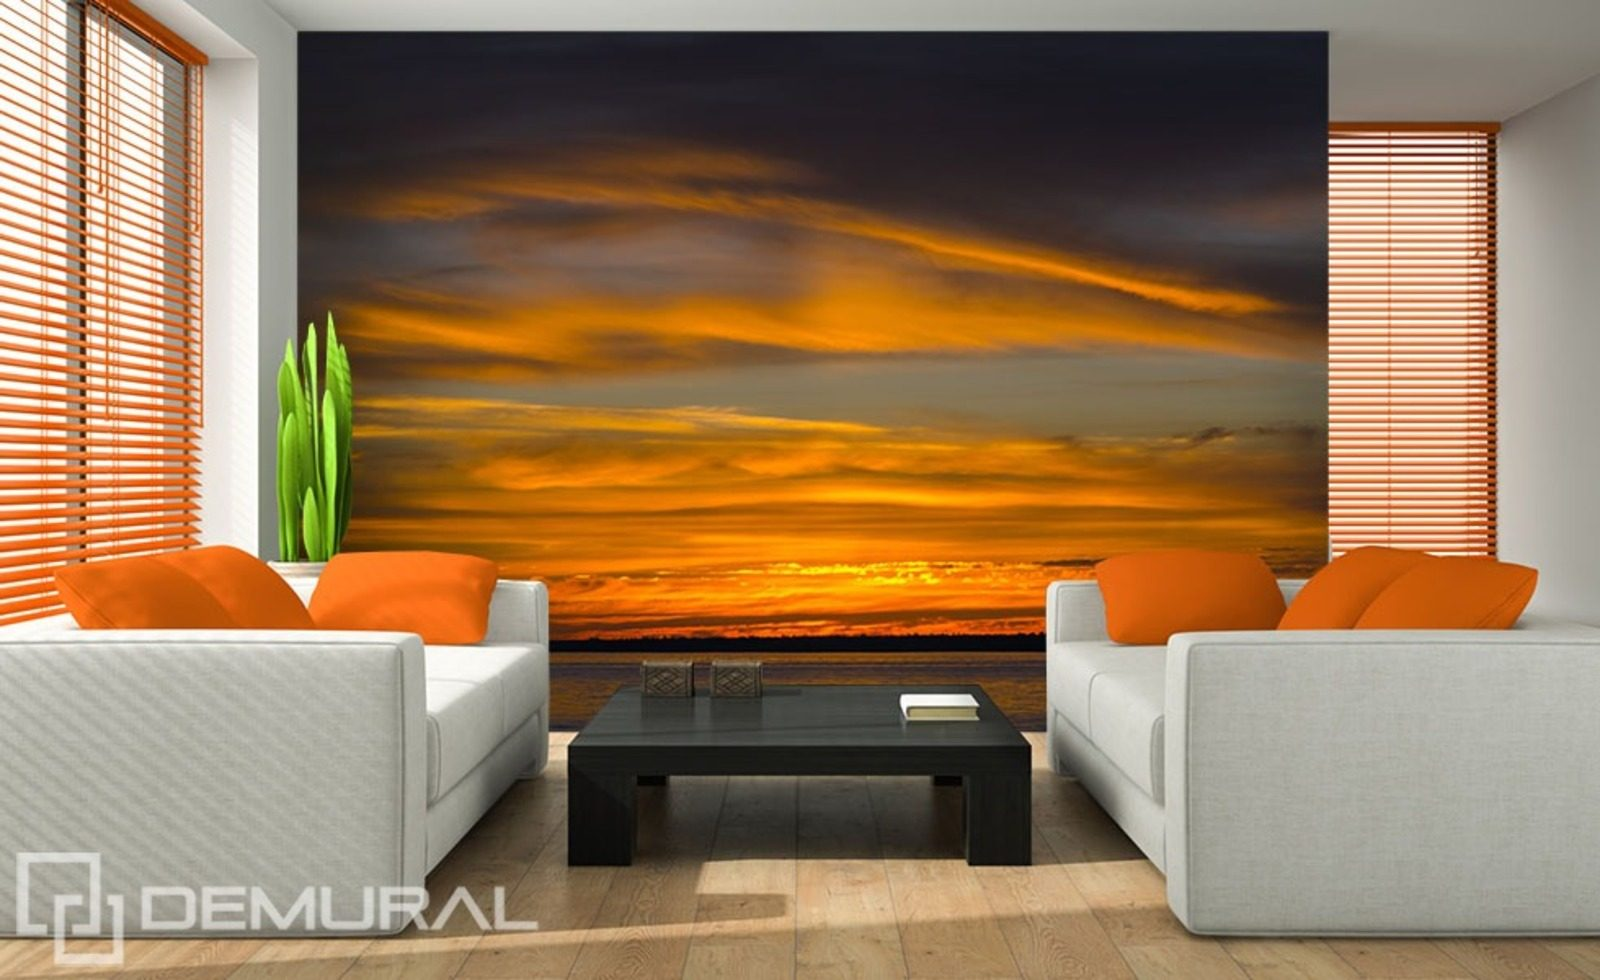 fototapete vlies farbe bei sonnenuntergang fototapeten. Black Bedroom Furniture Sets. Home Design Ideas